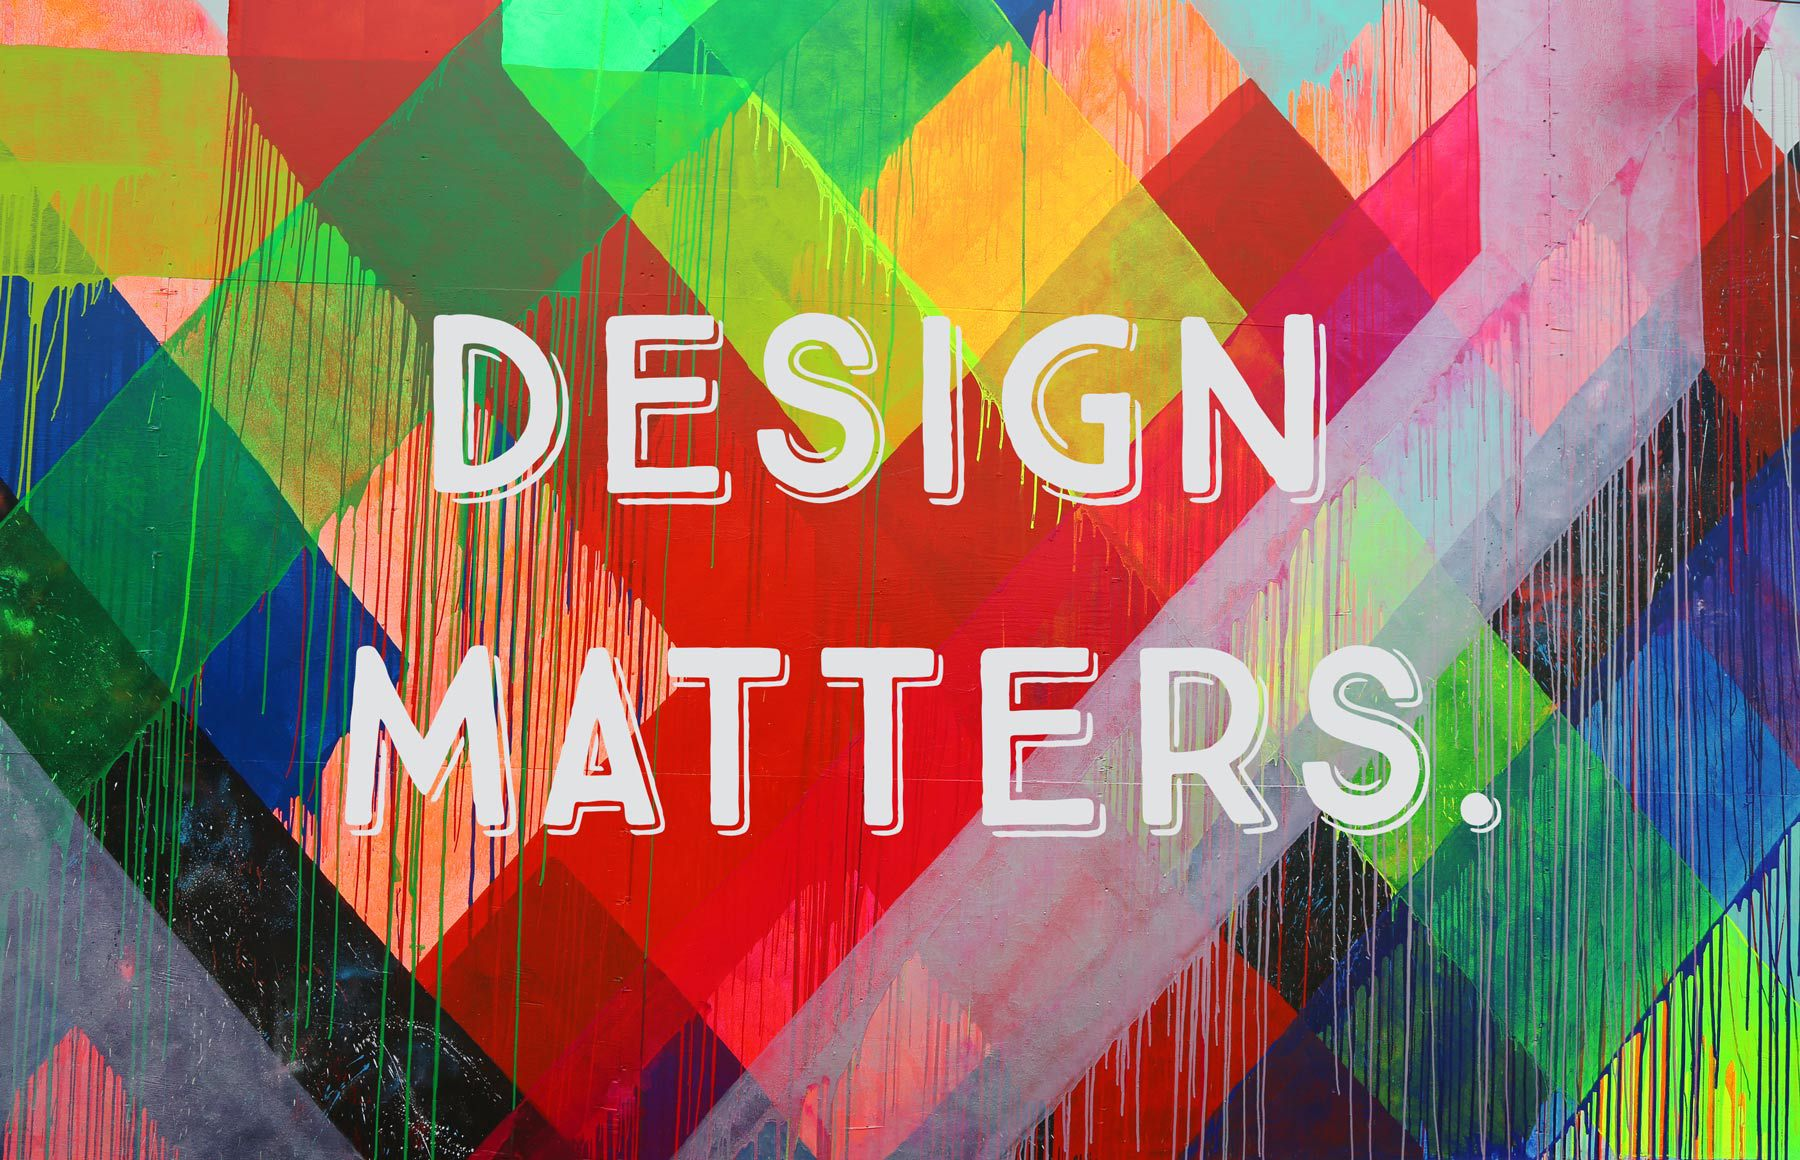 The 'Design Matters' Podcast by Debbie Millman   :  Features interviews with designers, artists and cultural leaders, including Lawrence Weiner, Barbara Kruger, Malcolm Gladwell, Eric Kandel, Stefan Sagmeister, John Maeda, Jonathan Hoefler and Tobias Frere-Jones, Michael Arad, Milton Glaser, Massimo Vignelli, Paula Scher, Steven Heller, Jonah Lehrer, among others.